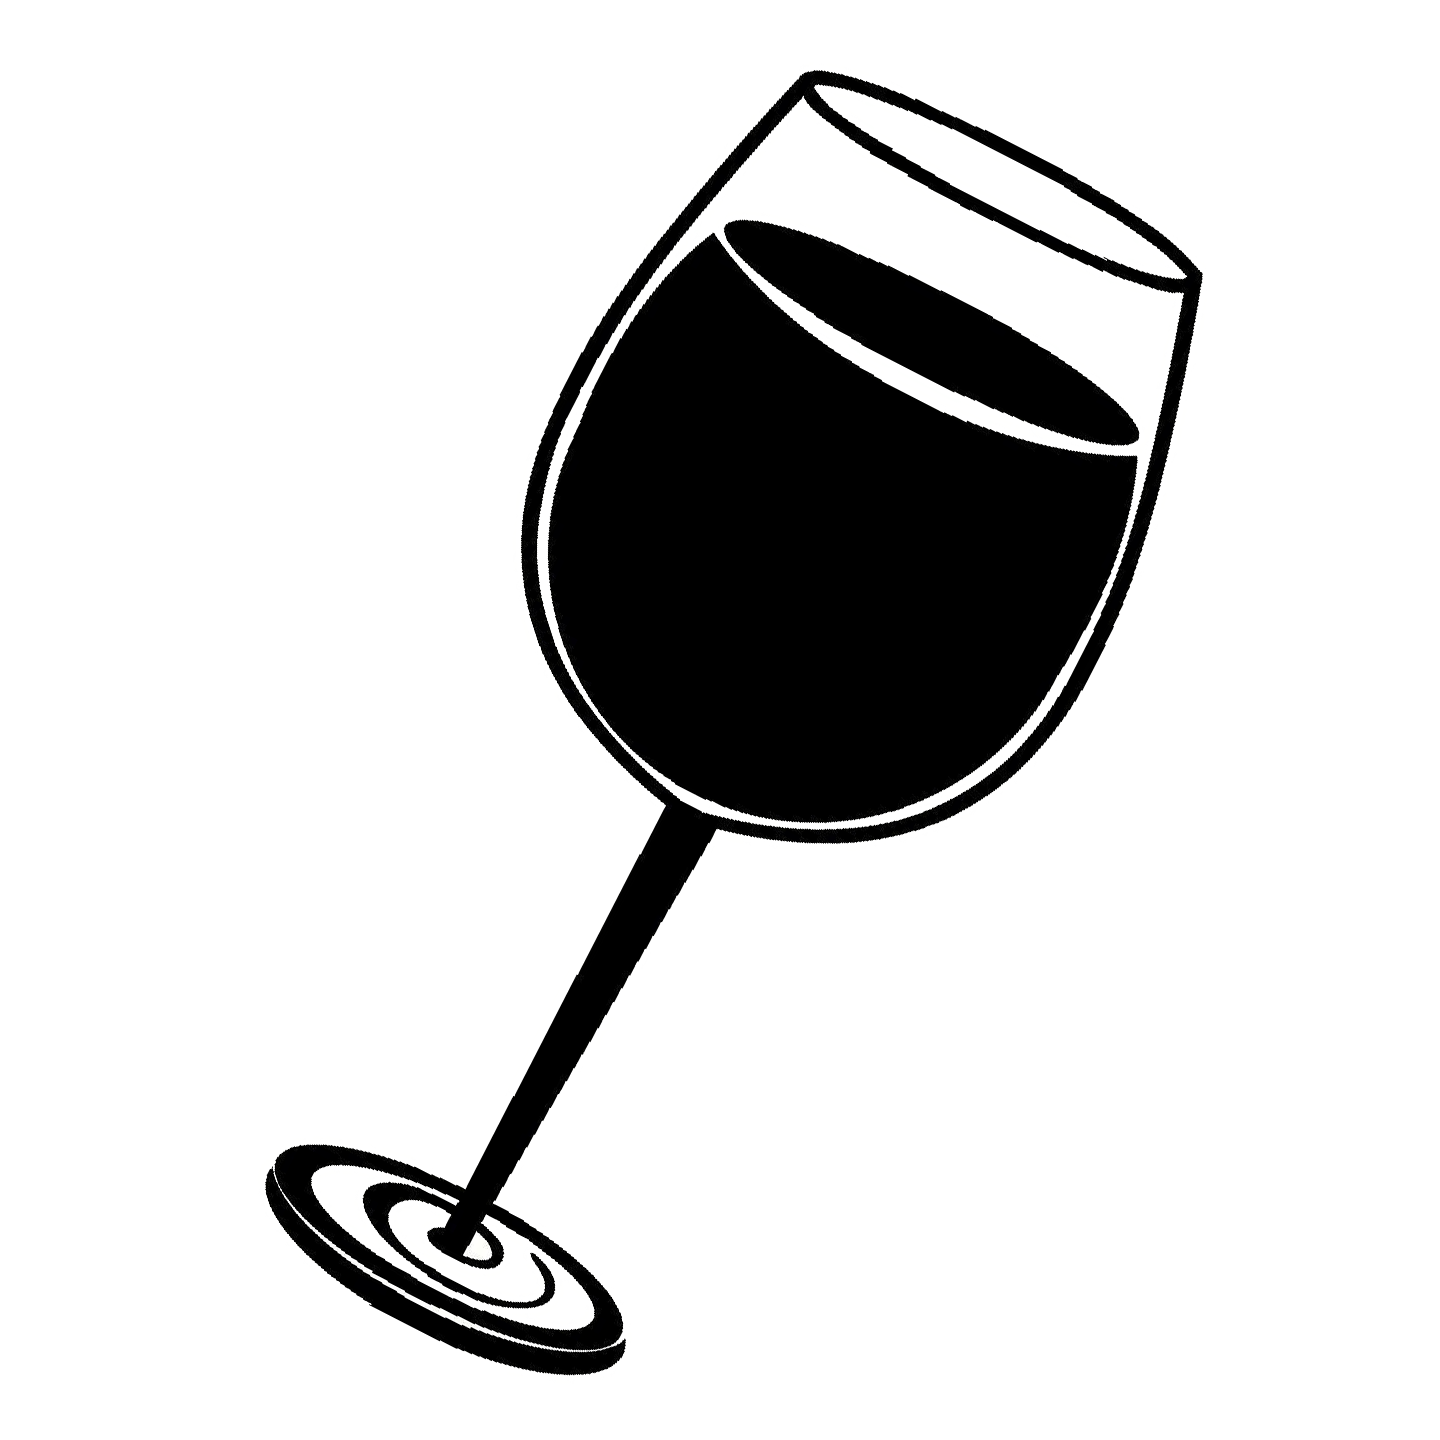 Wine glass black and white clipart image freeuse Black And White Wine Glass Png & Free Black And White Wine ... image freeuse